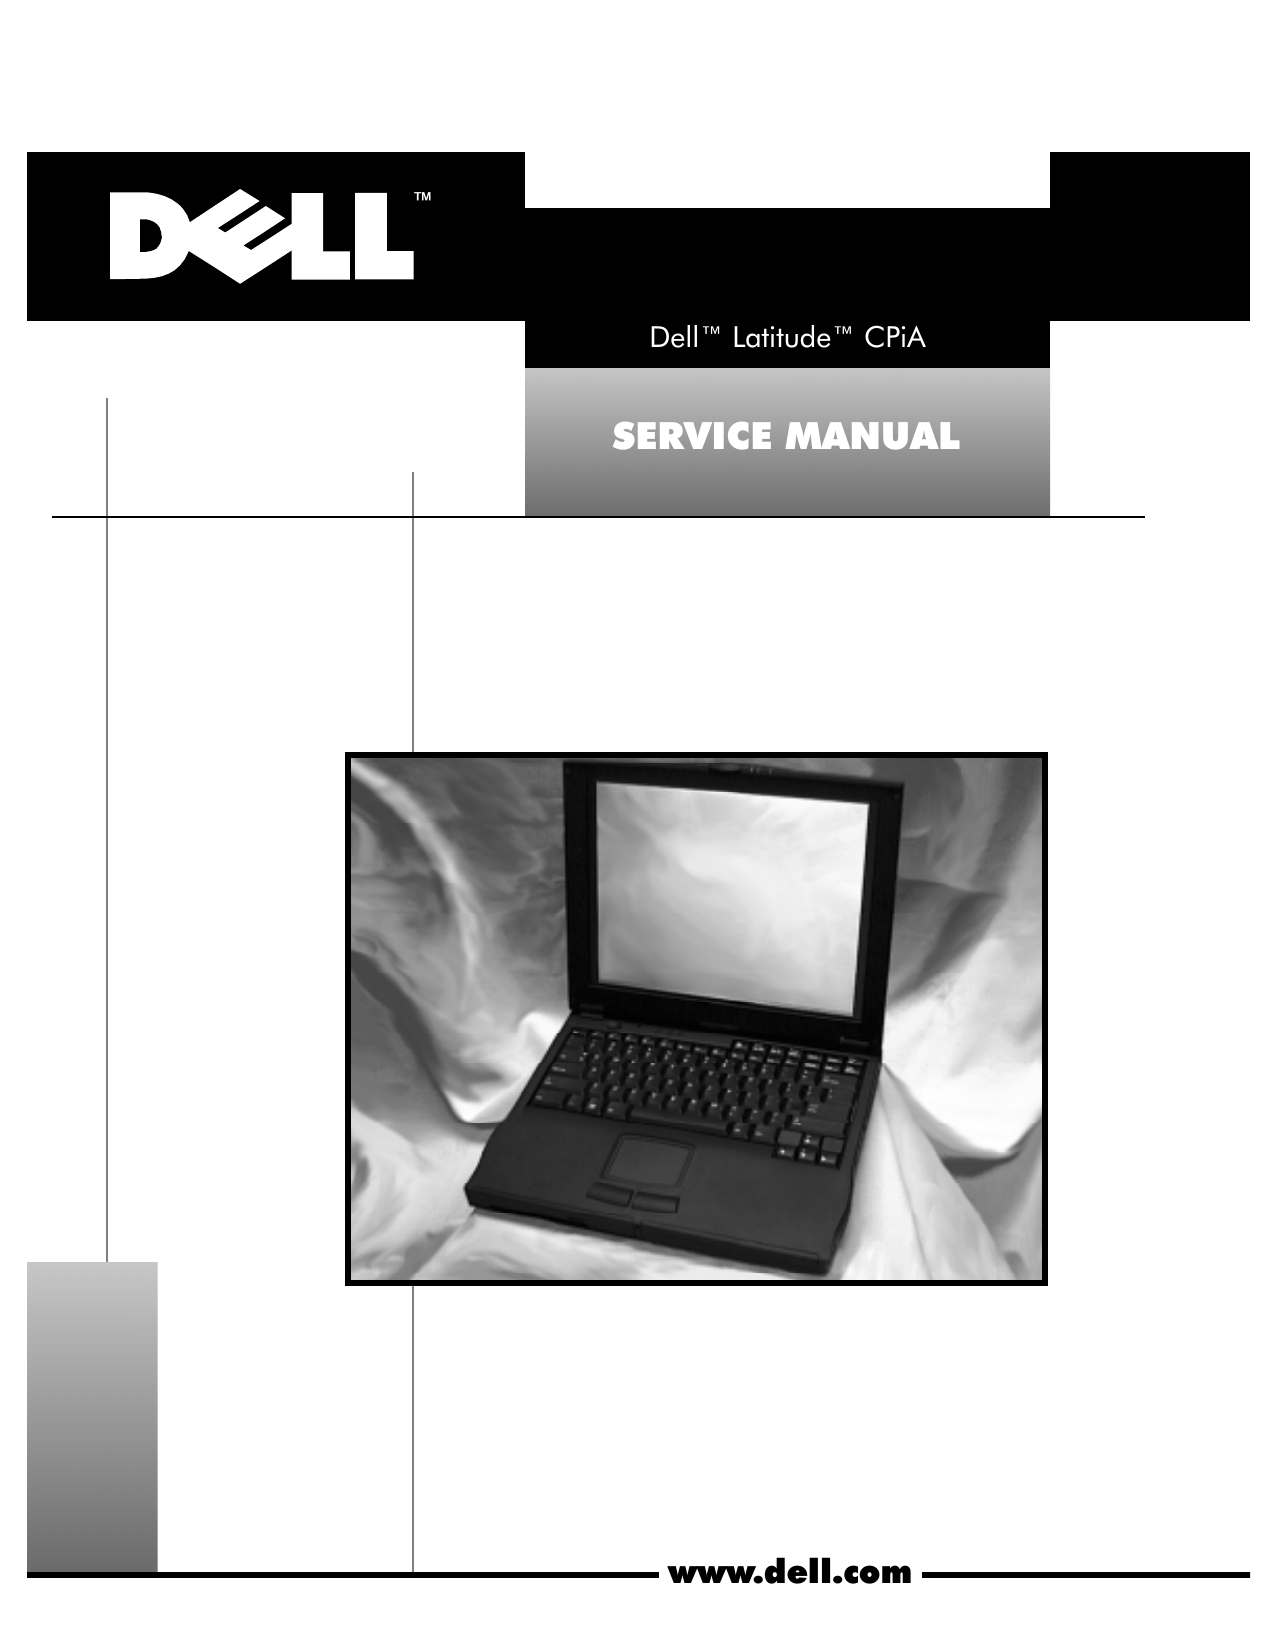 dell latitude cpx service manual various owner manual guide u2022 rh justk co Dell Latitude 131L Dell Latitude E6400 ATG